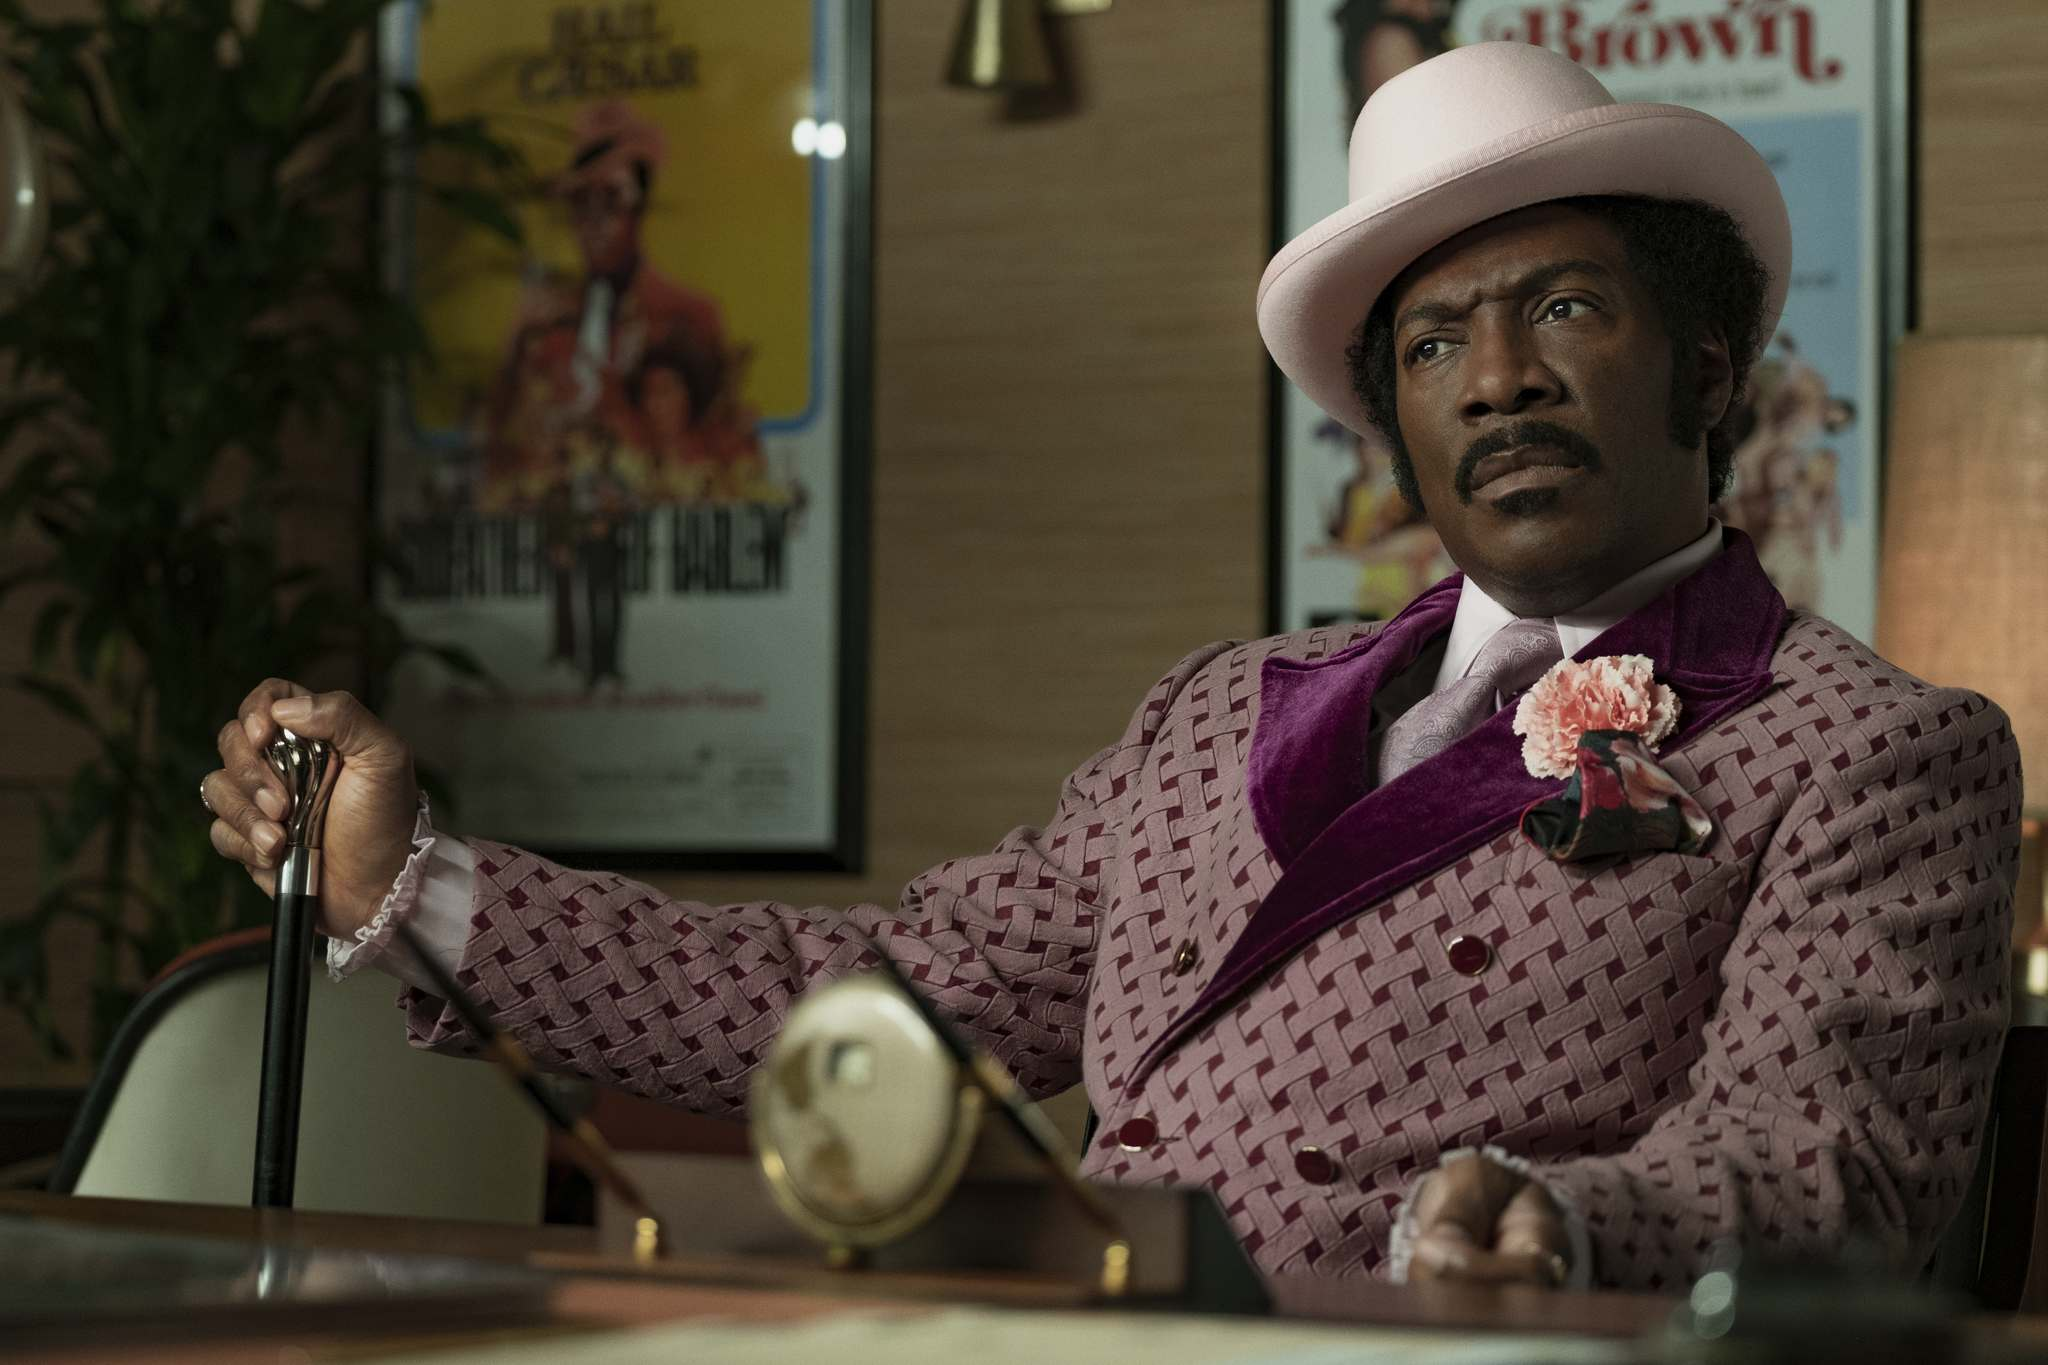 Eddy Murphy is back with a force in Dolemite Is My Name, playing Rudy Ray Moore, the Godfather of Rap.